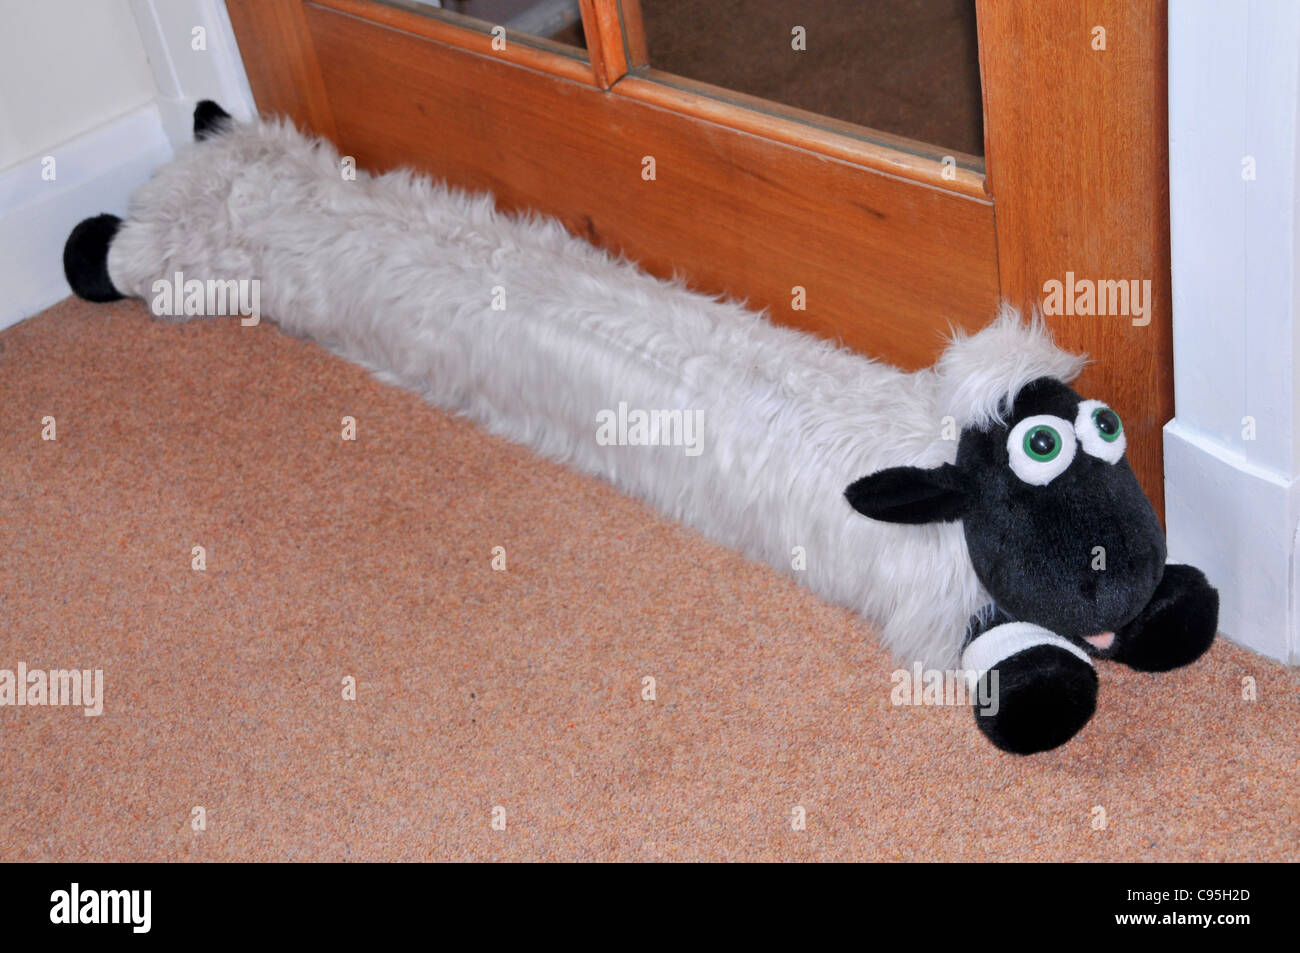 A door draft excluder in the shape of a sheep. - Stock Image